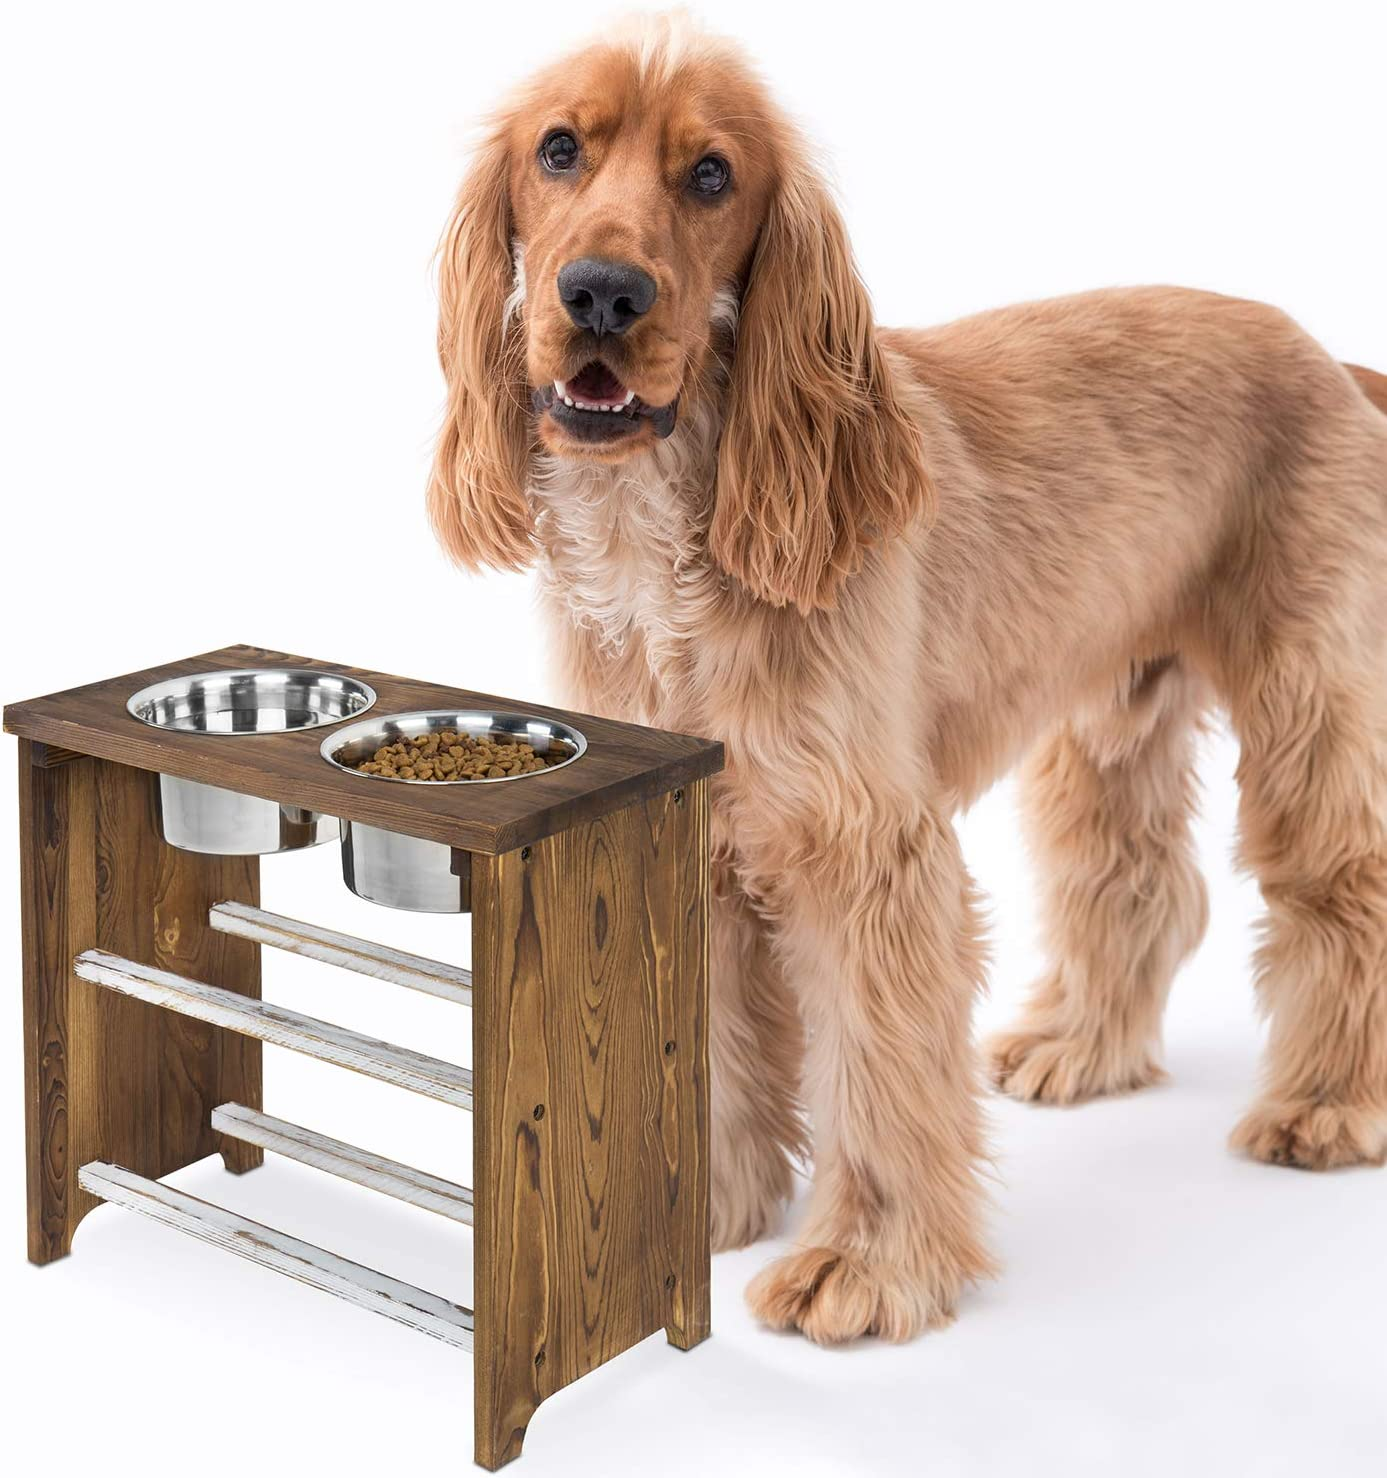 MyGift 15 Inch Tall Dark Brown Burnt Wood Large Pet Dog Raised Feeder Stand with 2 Stainless Steel Bowls